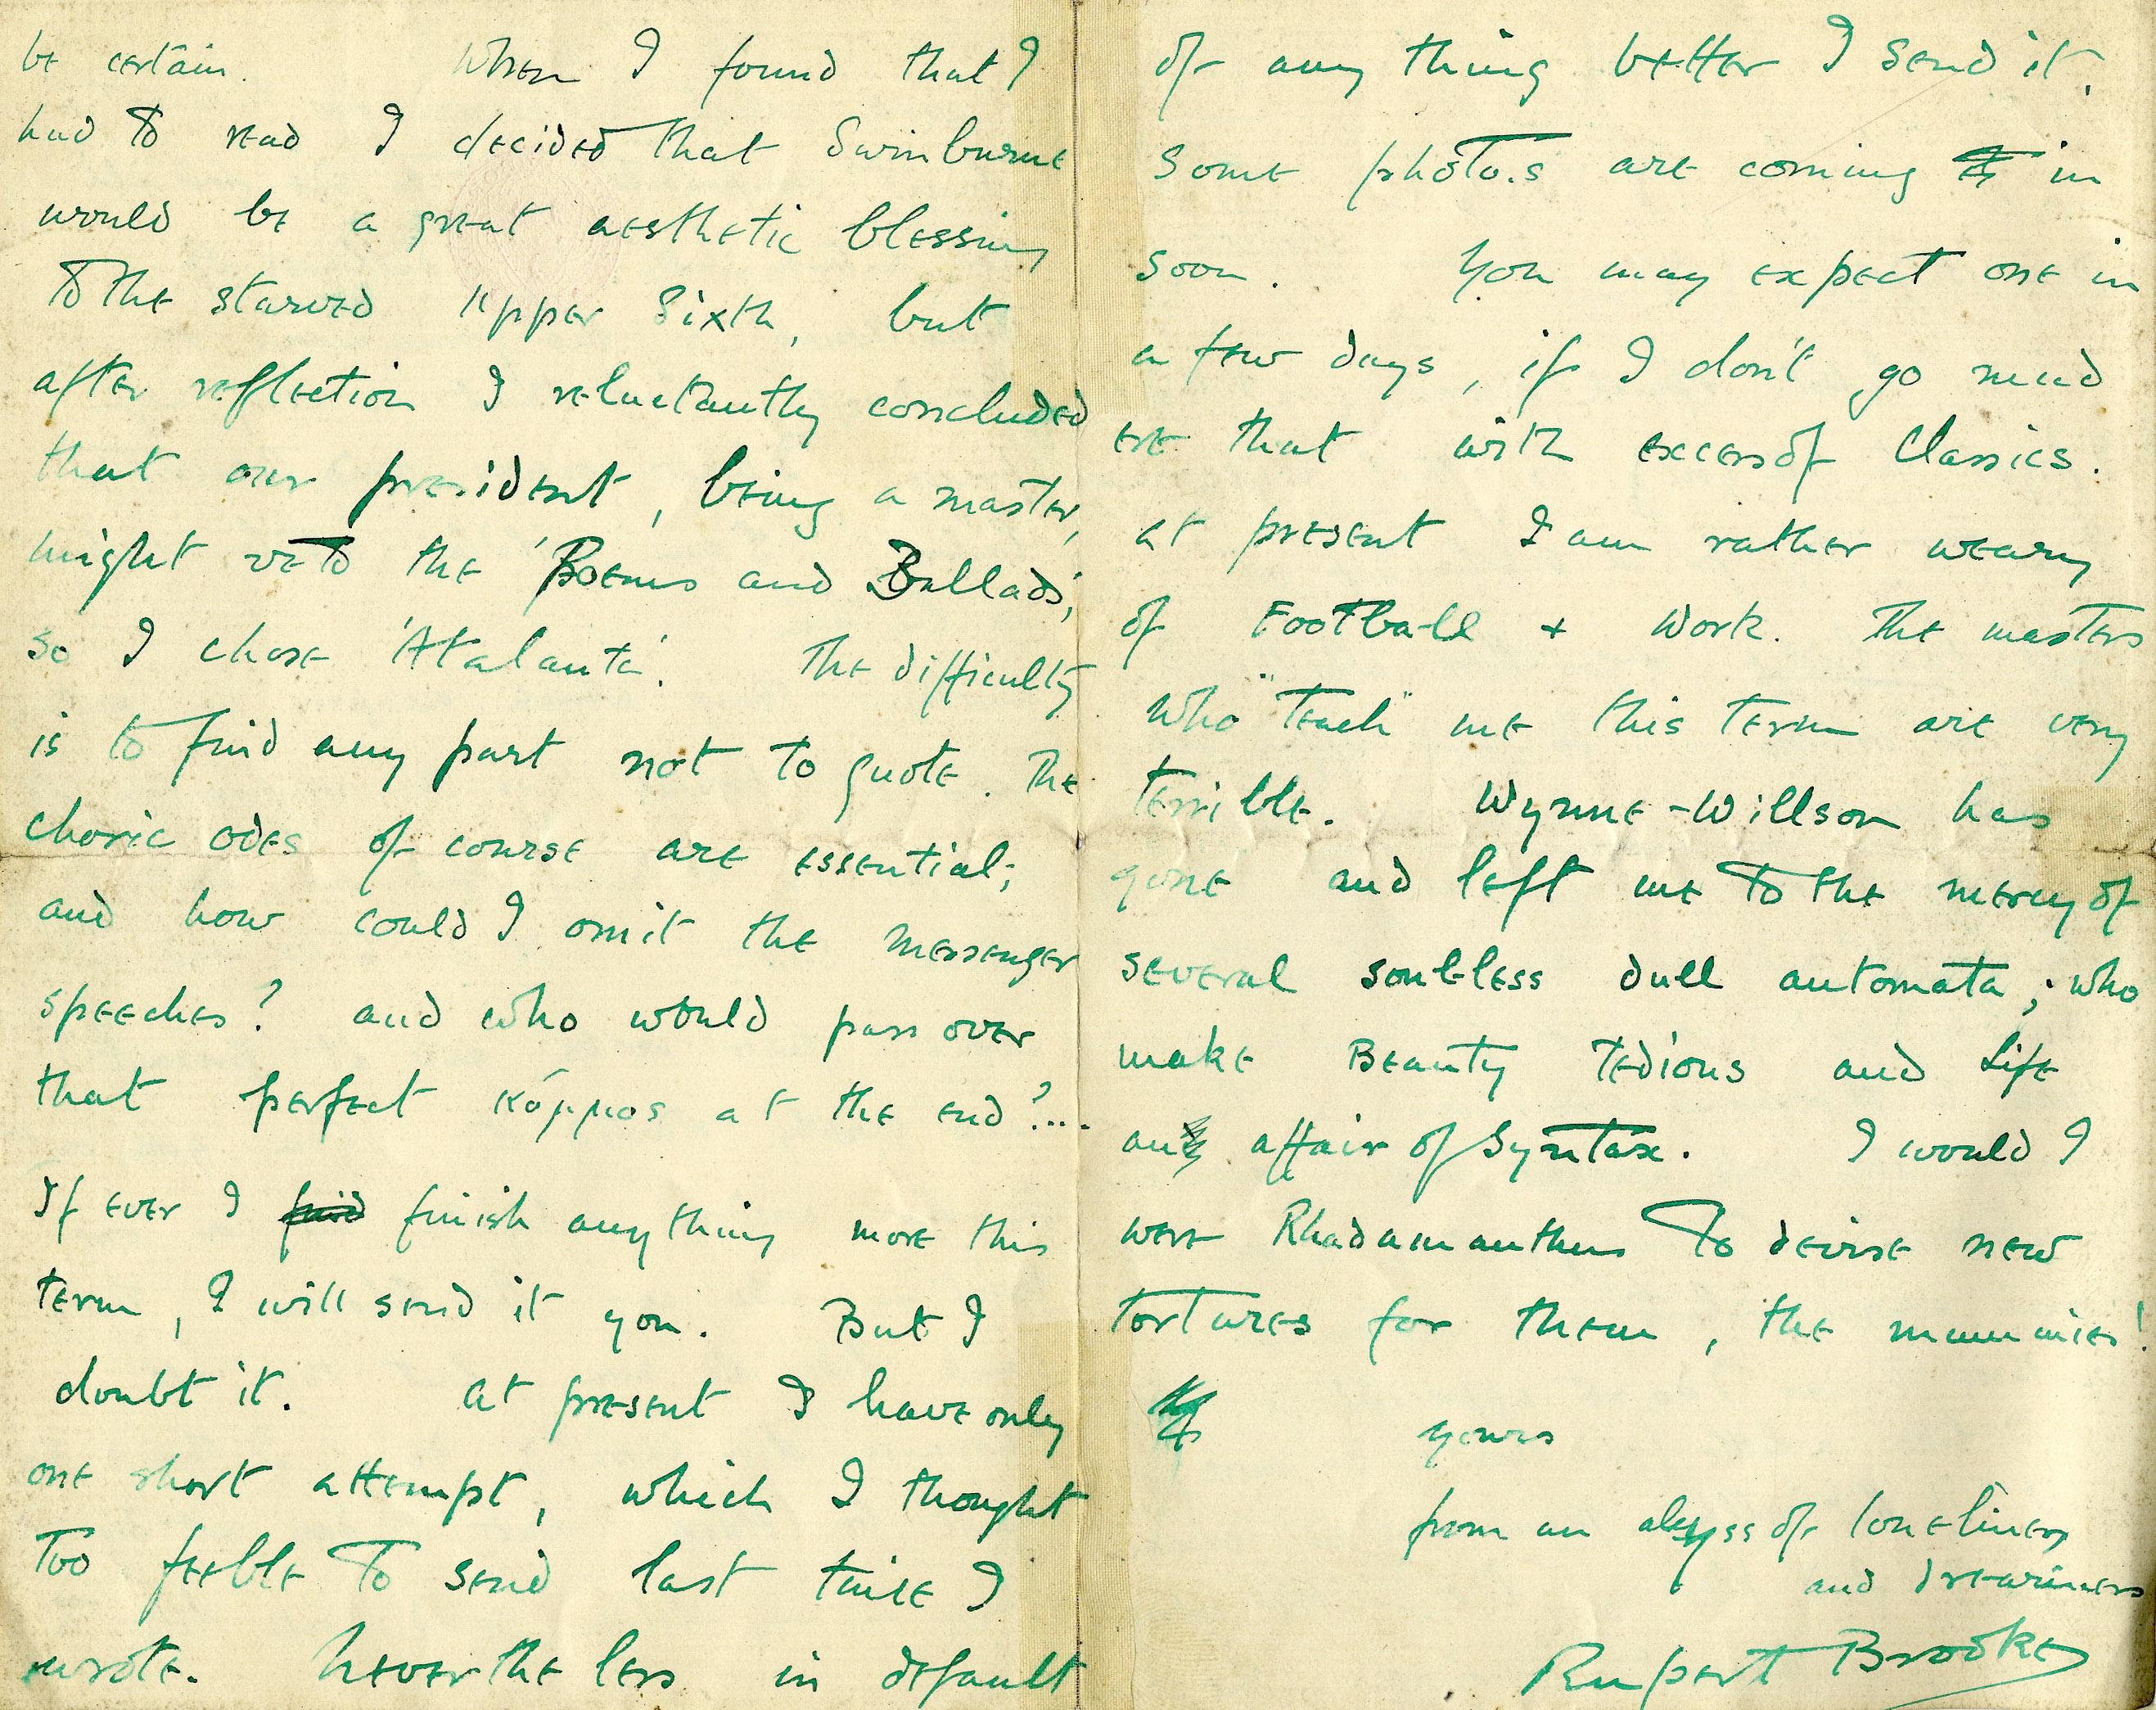 Second page of a letter from Rupert Brooke to St. John Lucas, Autumn 1905 (RCB/L/2)